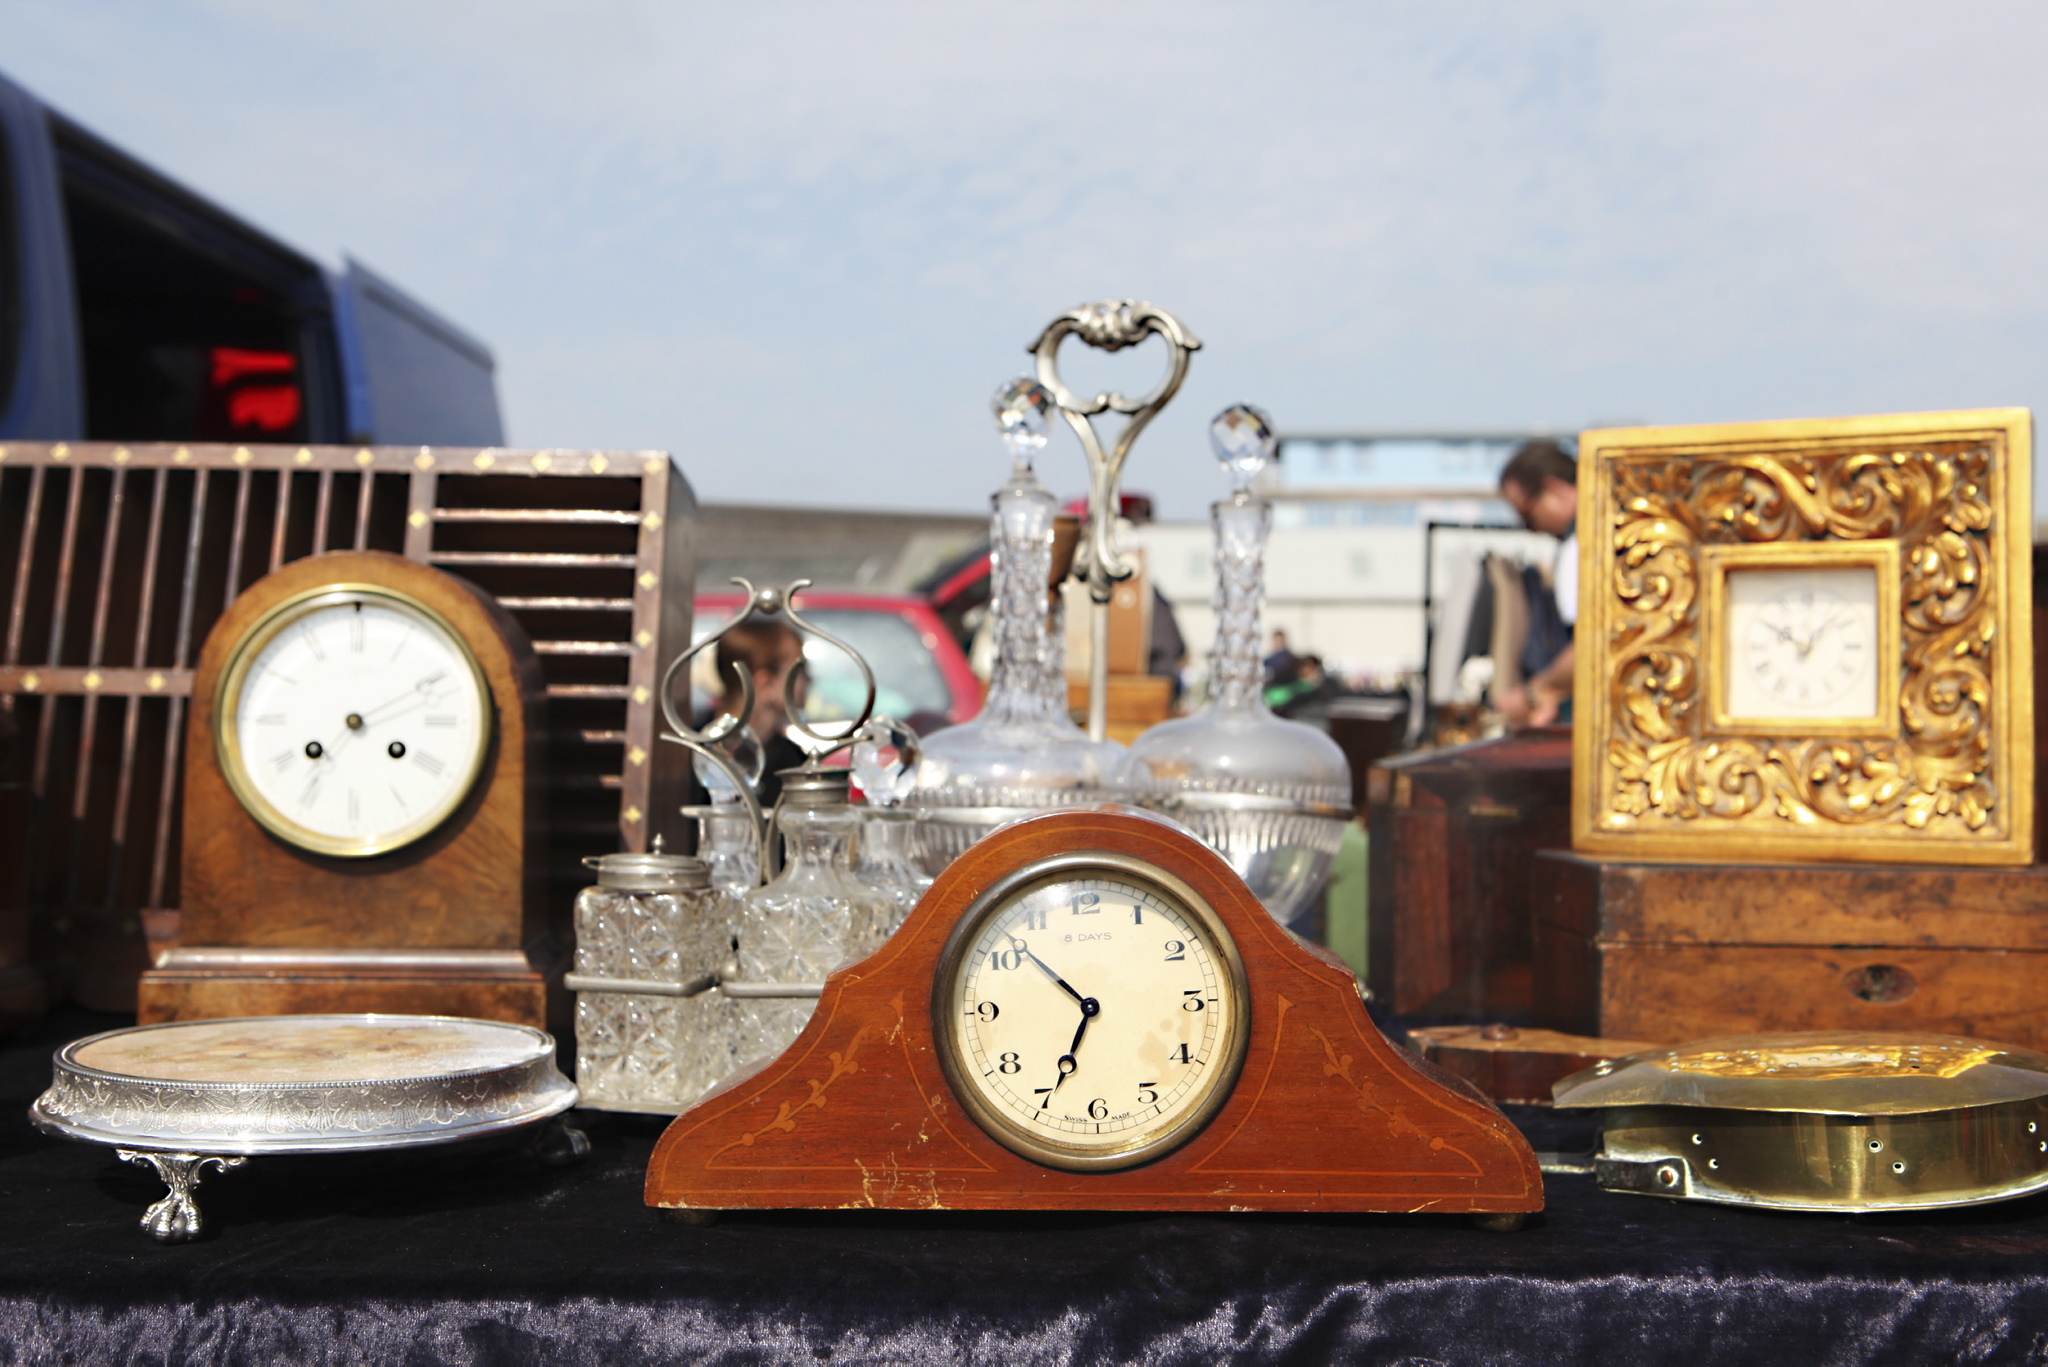 Wimbledon Car Boot clocks